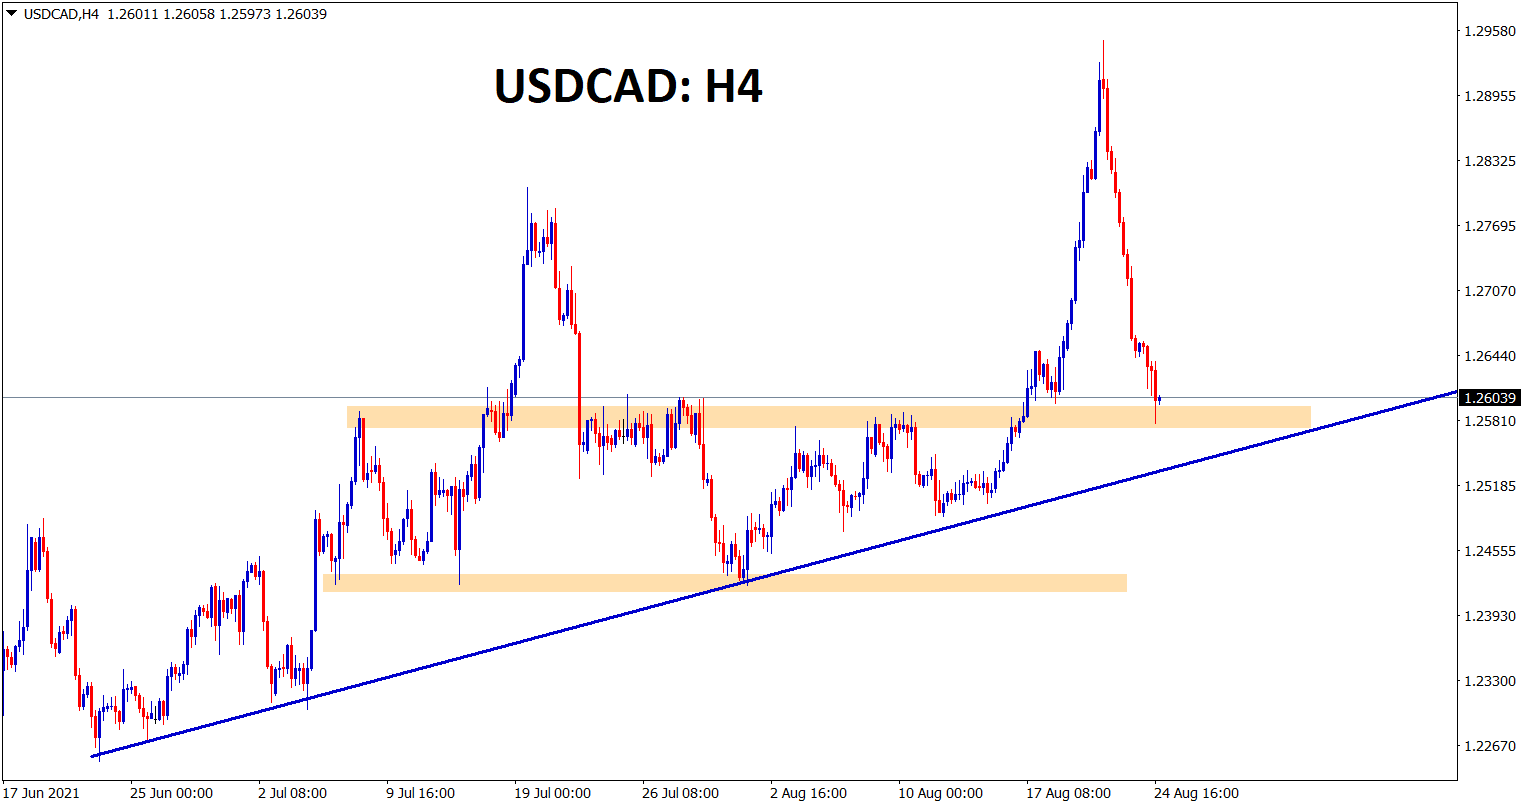 USDCAD hits the previous resistance area and going to reach the higher low of an uptrend line